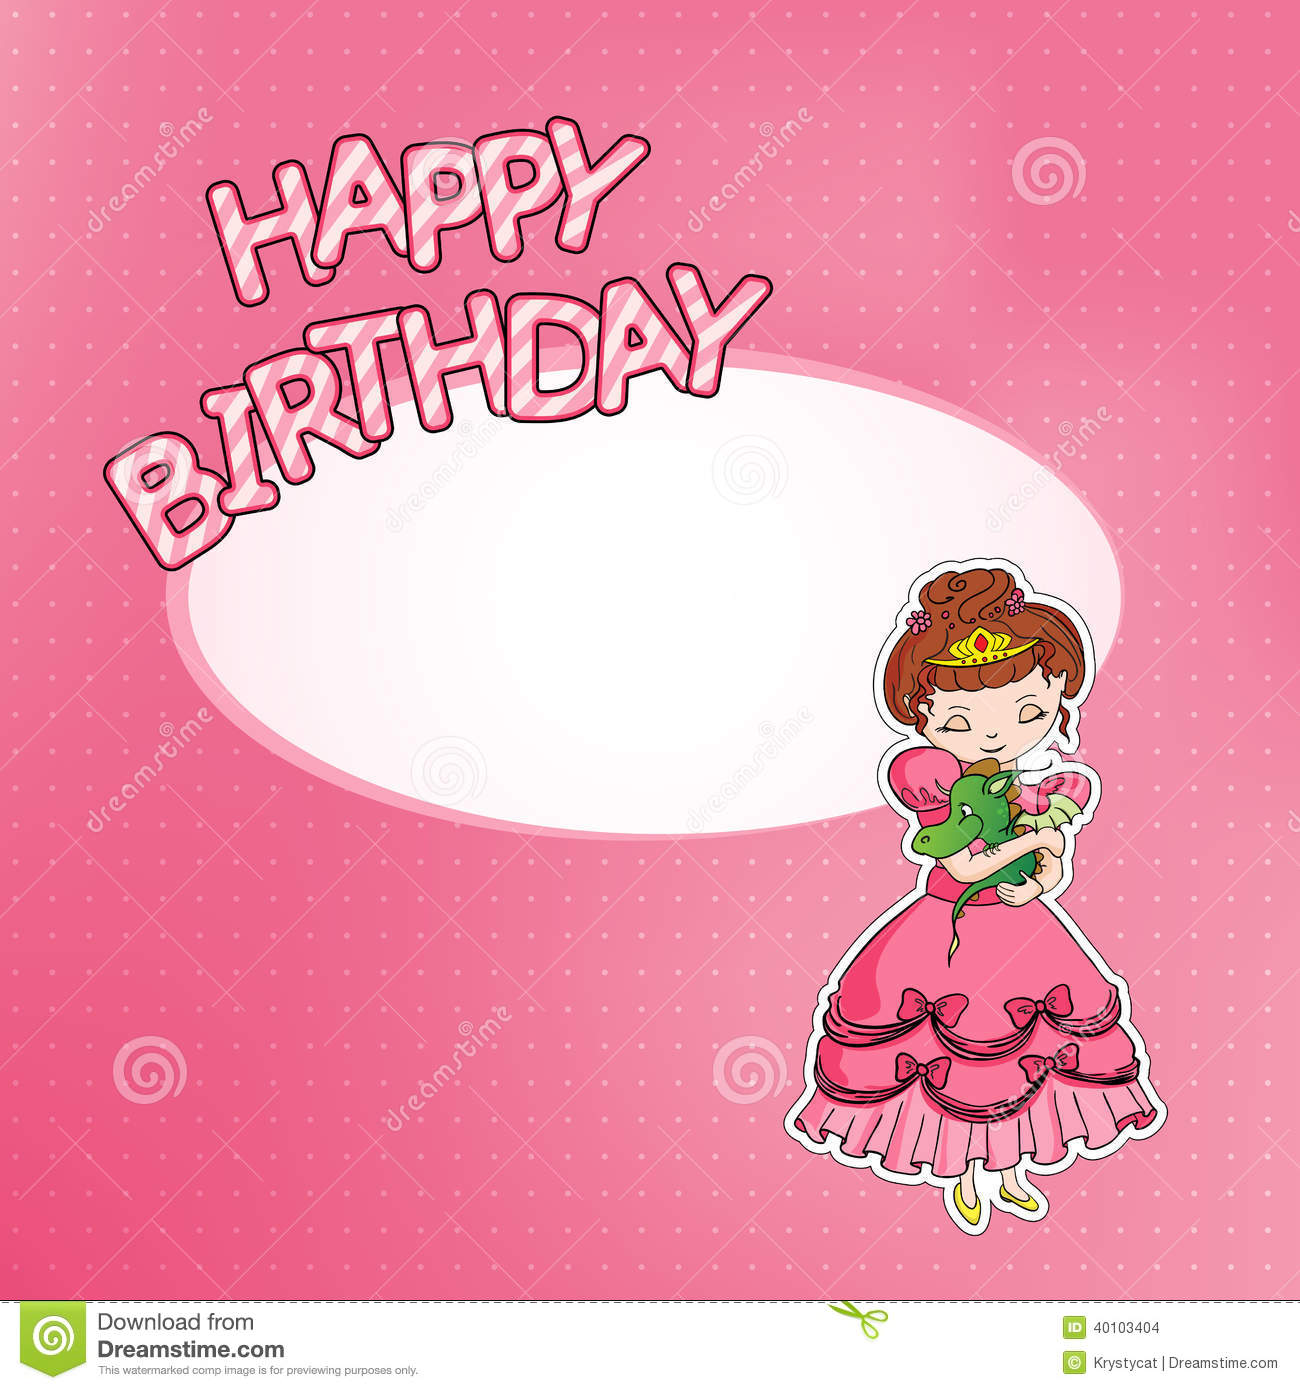 happy birthday princess greeting card stock photos, images, Birthday card